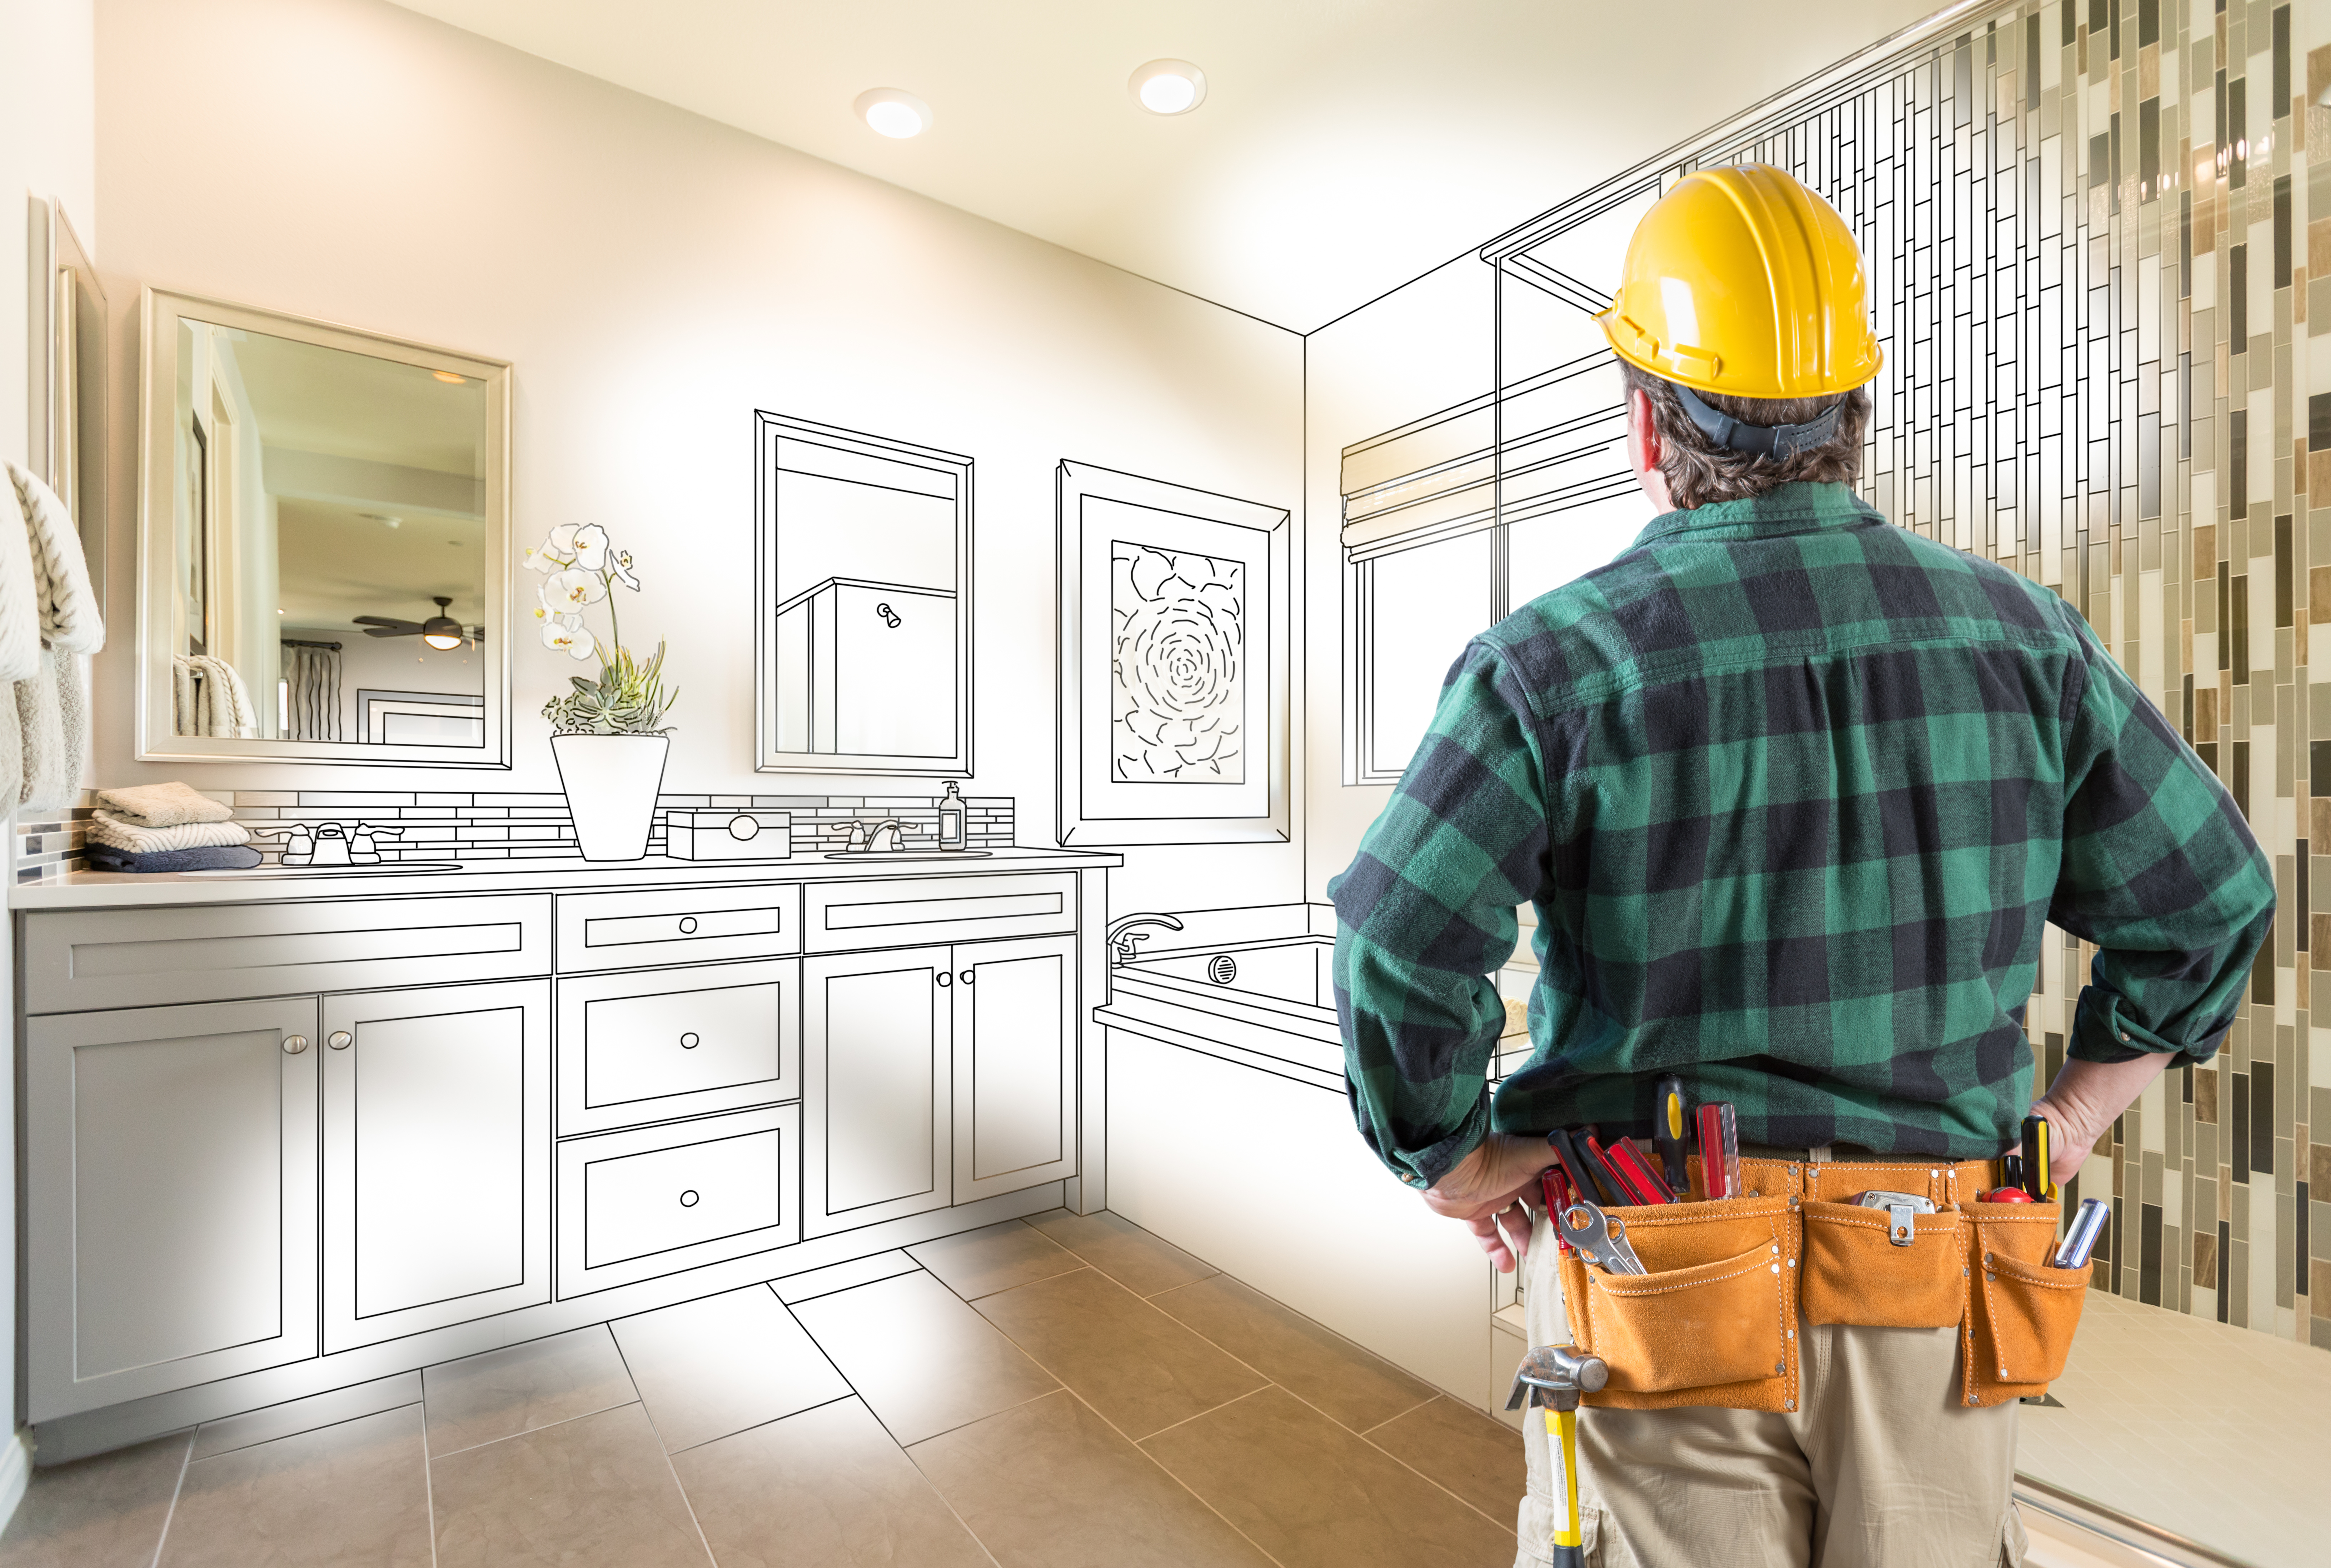 Adding a bathroom to your existing home may add value to your home.